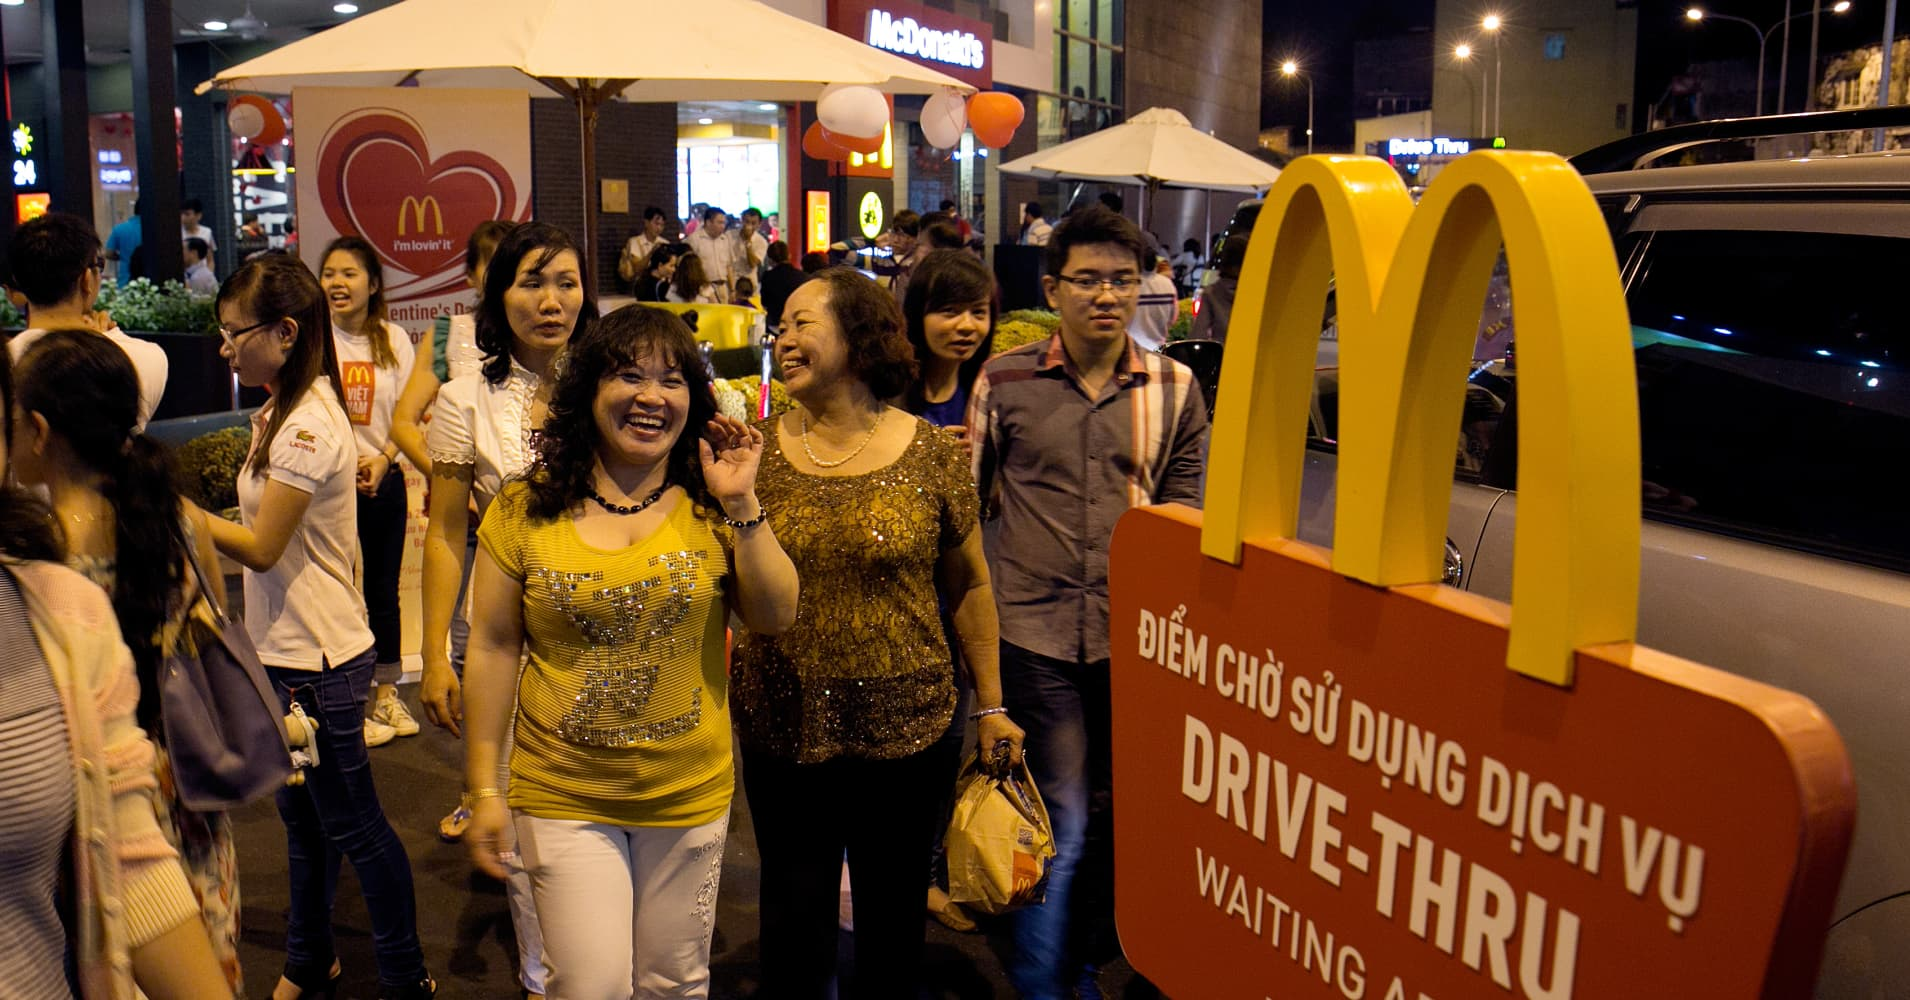 Why McDonald's and Burger King flopped in Vietnam